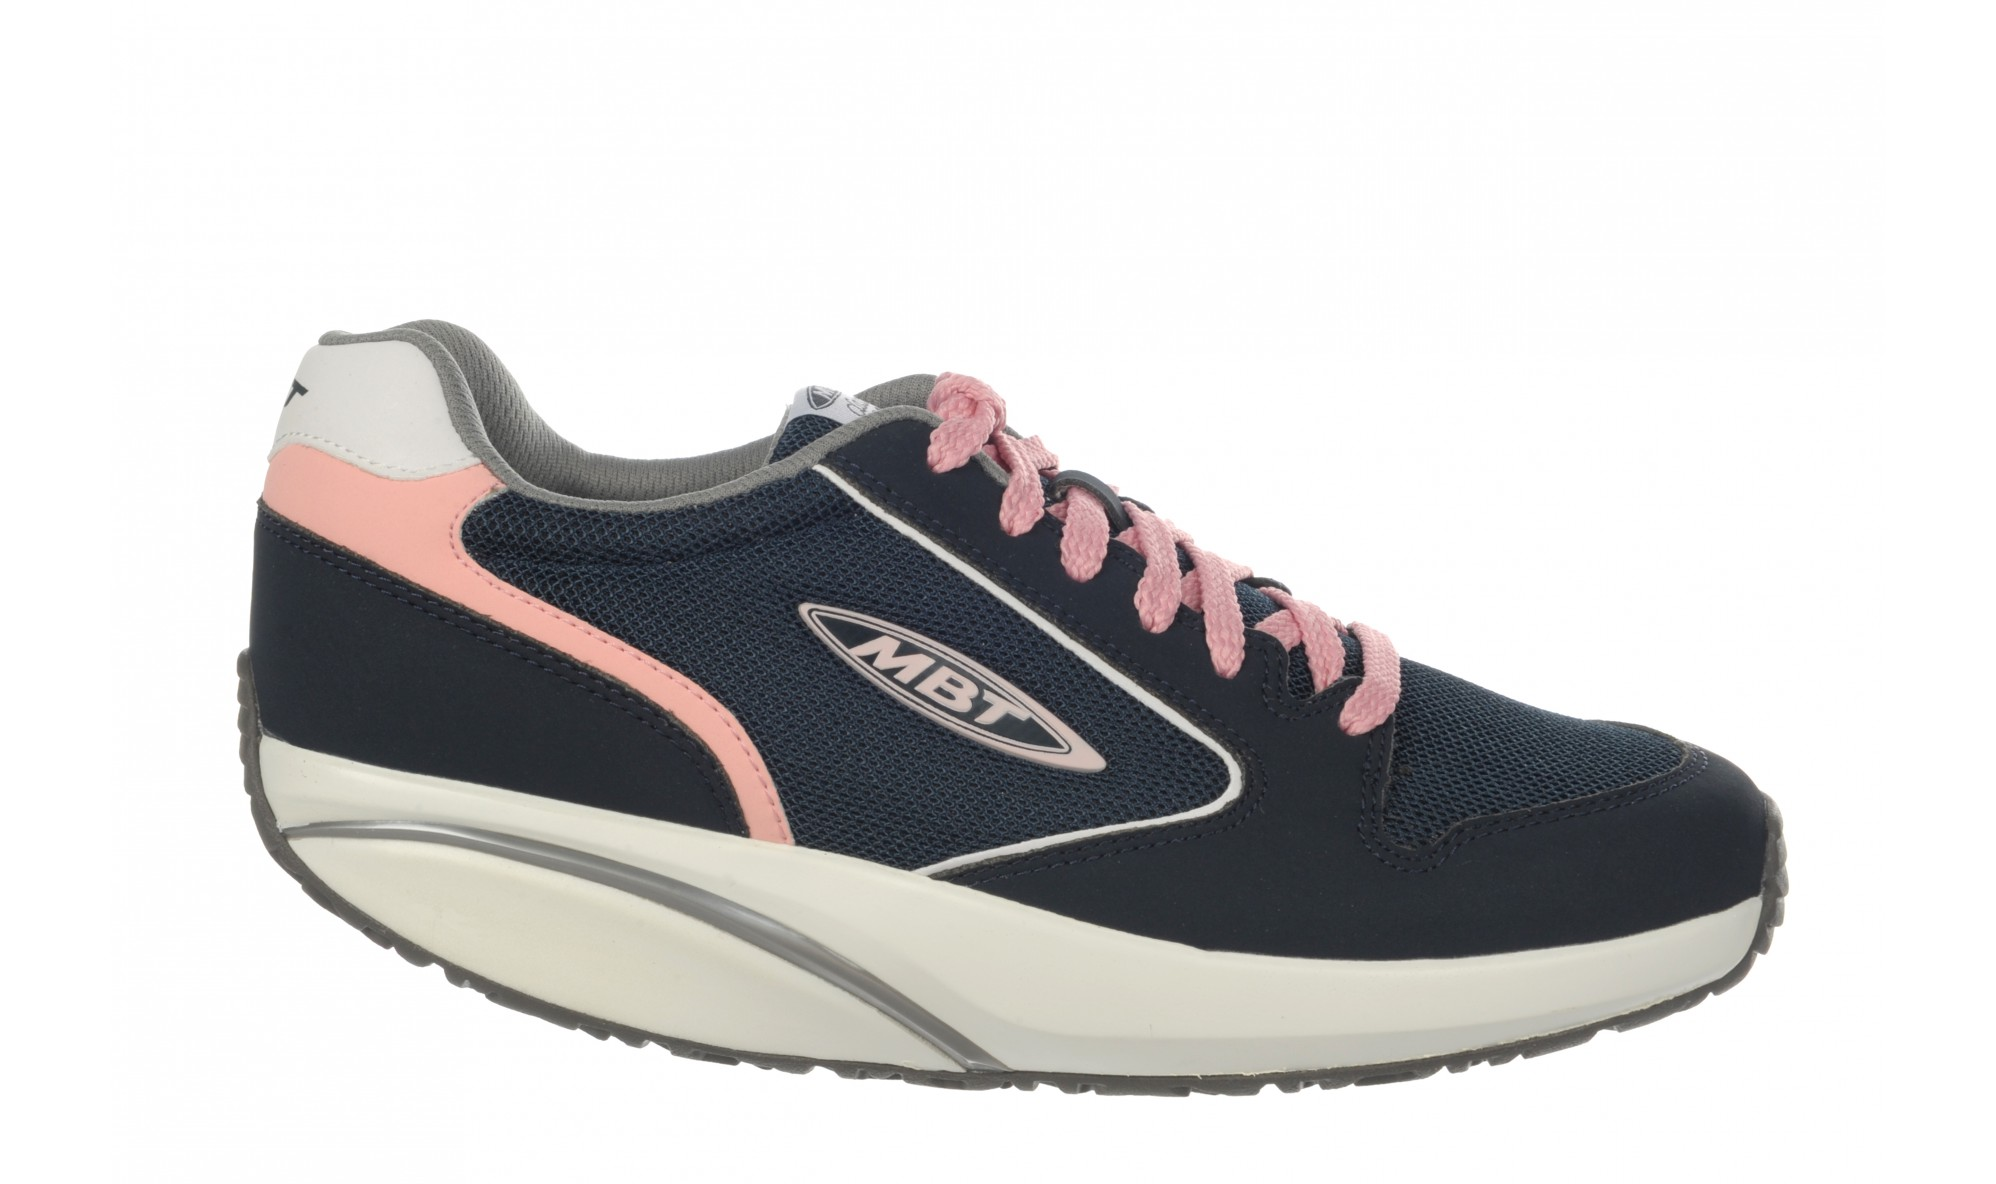 MBT Women's MBT 1997 Navy / Blossom